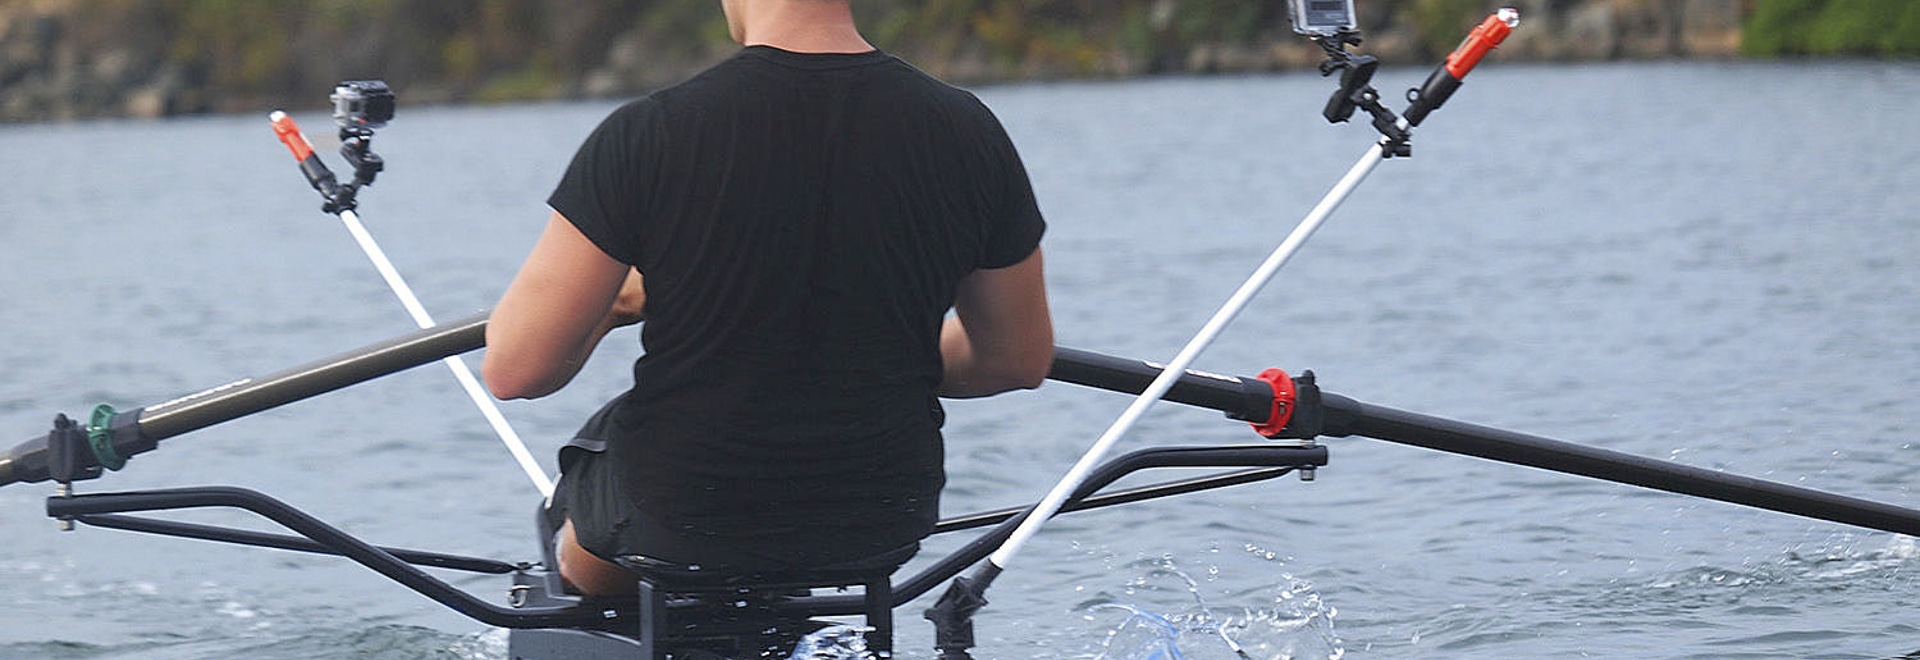 6c200bf951 The Oar Board™: the perfect way to convert a paddle board into a ...